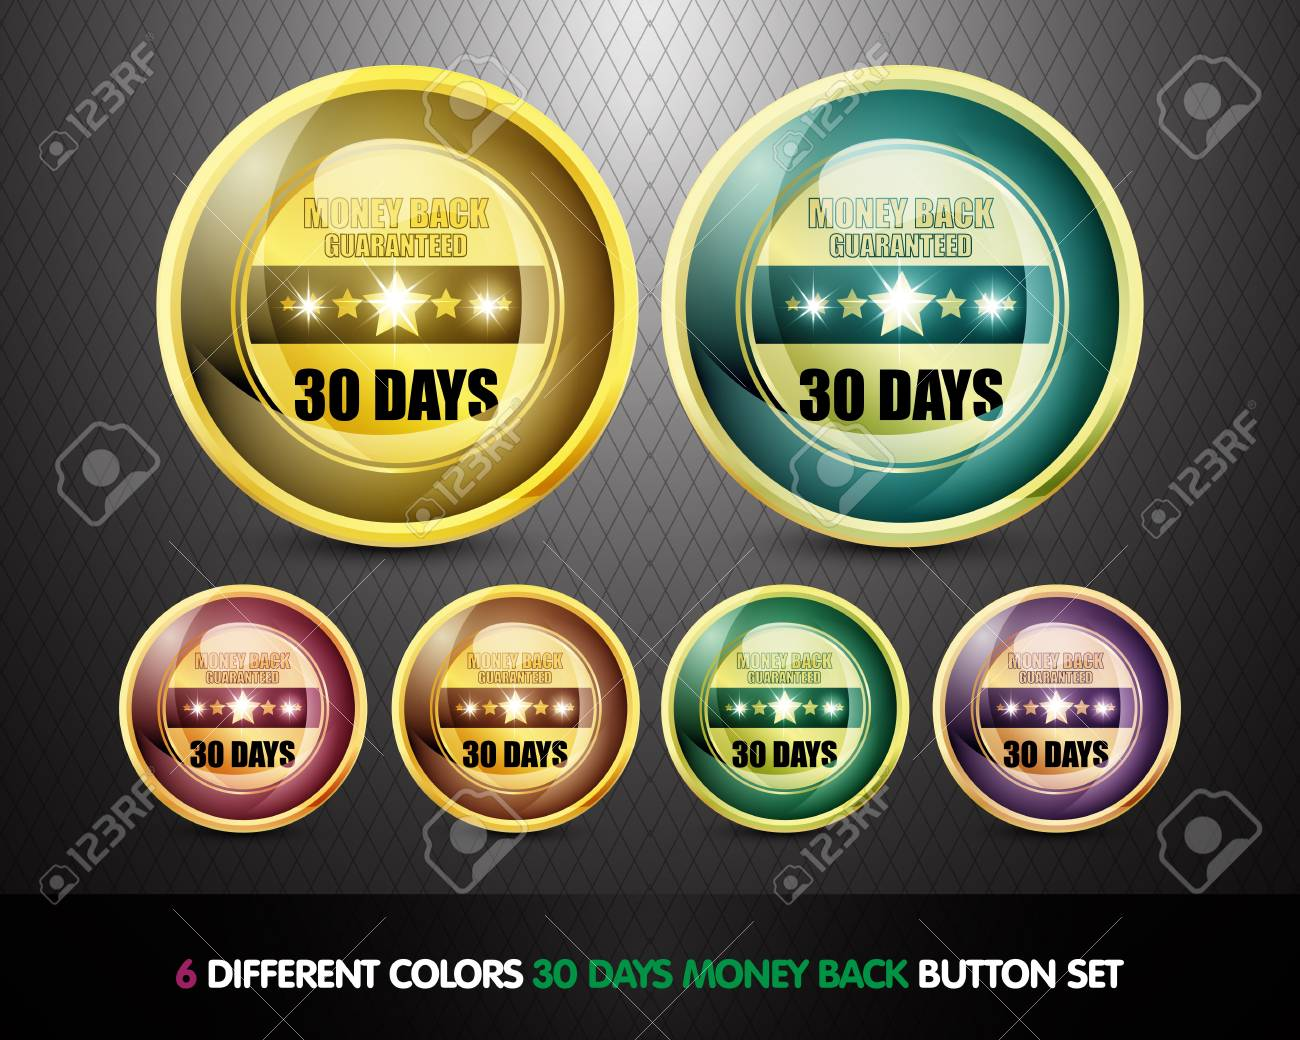 Colorful Money back guaranteed  30 Days  button Set Stock Photo - 13029034